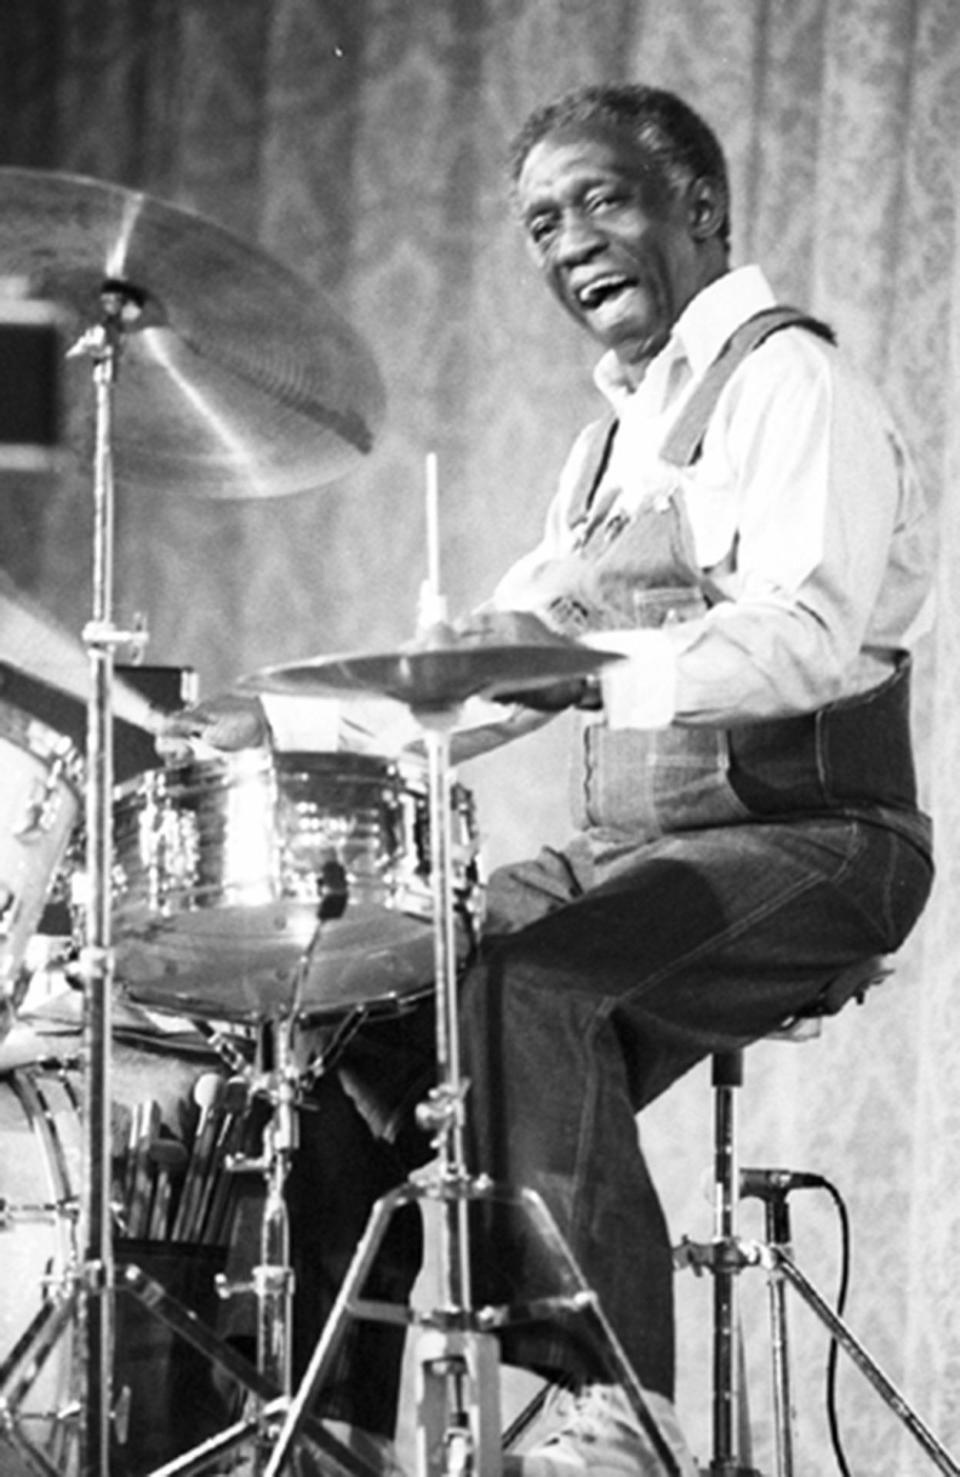 <p>The maestro jazz drummer Art Blakey was known for his aggressive swing style. His hands could move at the speed of light, and he was among one of the most expressive players in the history of jazz drumming. Though Blakey typically performed in a suit, here he's photographed during a rehearsal casually dressed in overalls and sneakers, wearing his other signature: a big, contagious smile. <i>(Photo: Getty Images)</i></p>